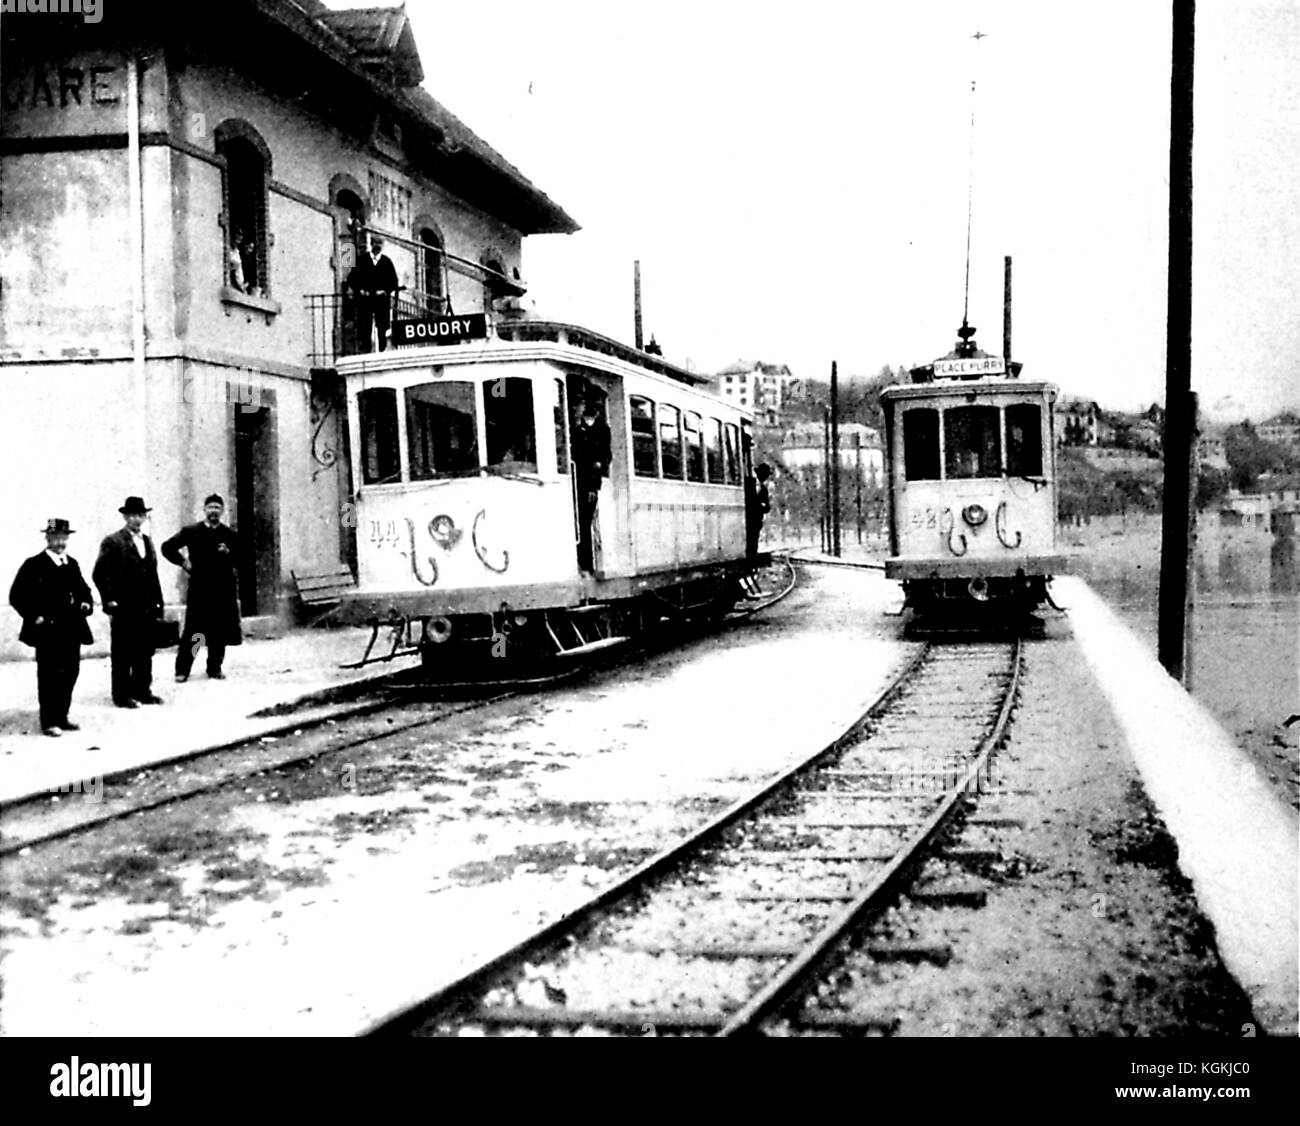 Photograph of an early electric train line connecting Neuchatel, Switzerland with Boudry, Switzerland, with men - Stock Image